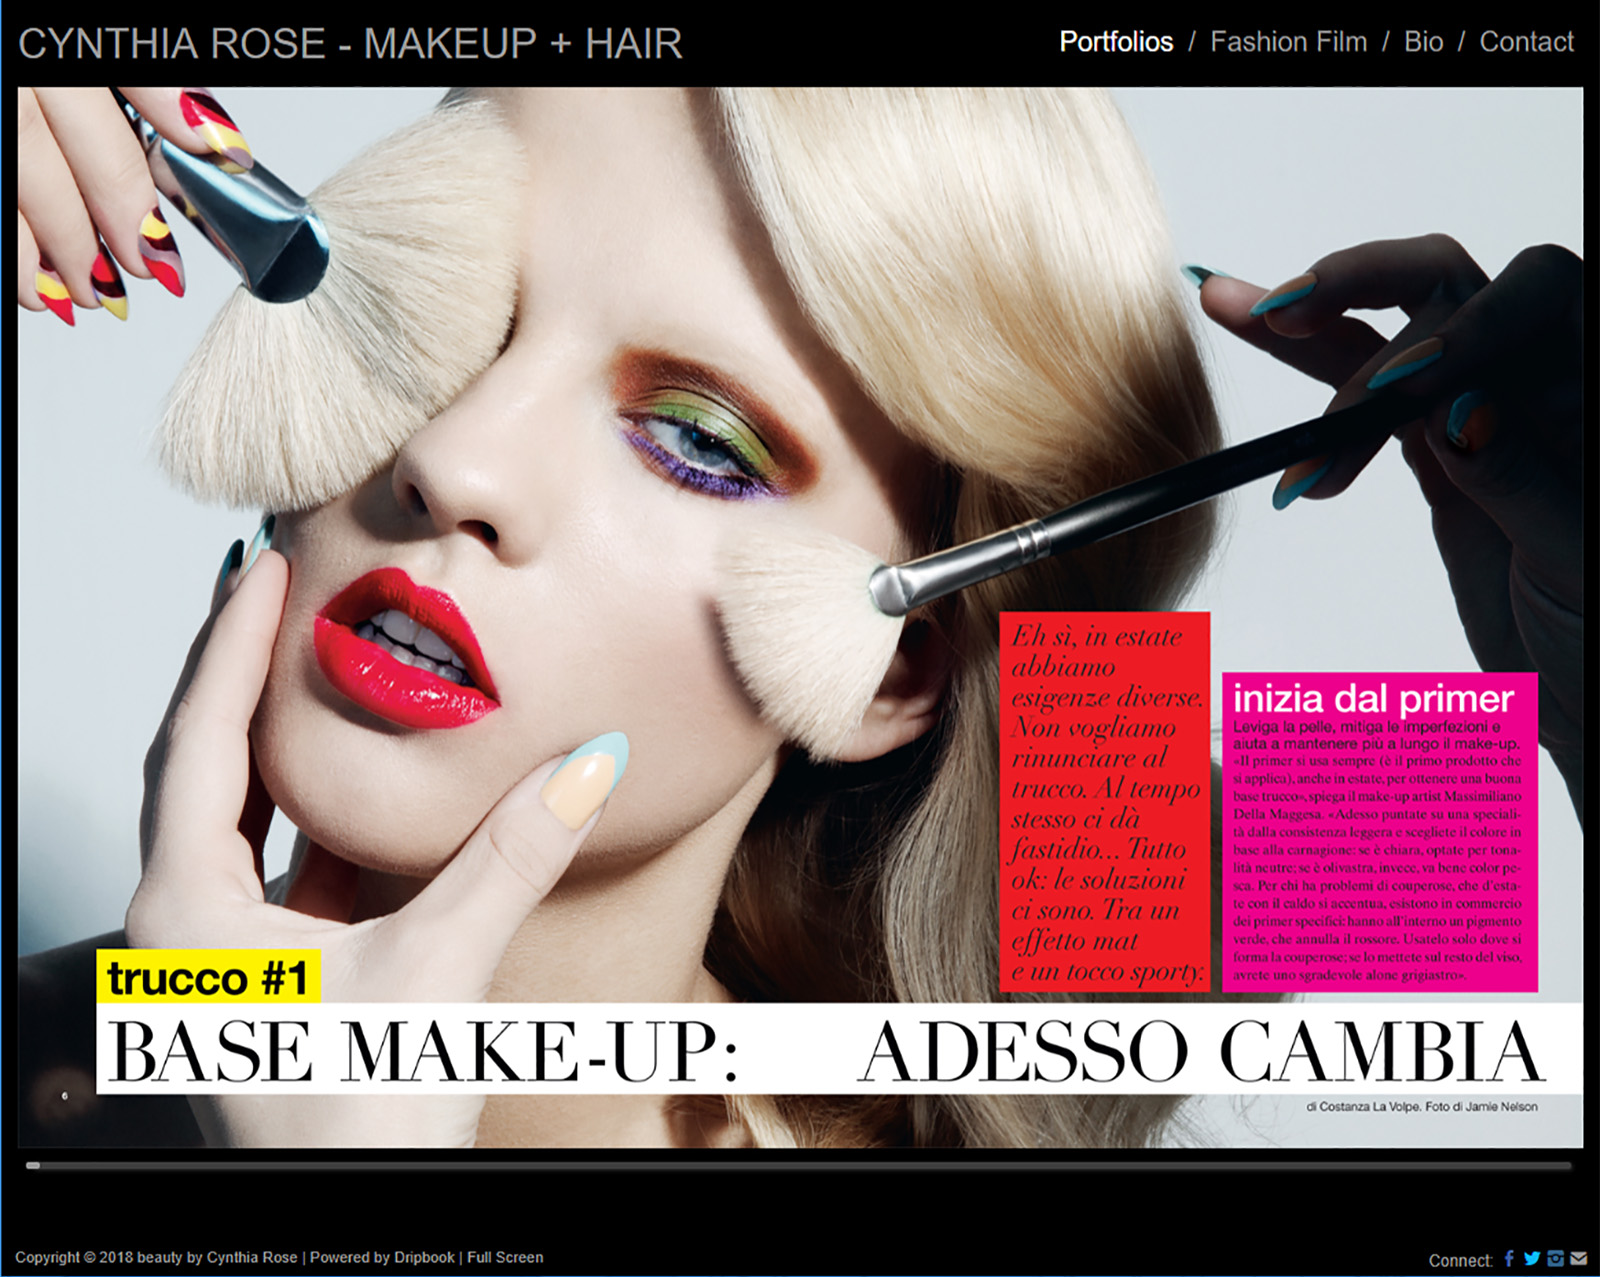 screen capture of makeup & hair artist Cynthia Rose's website